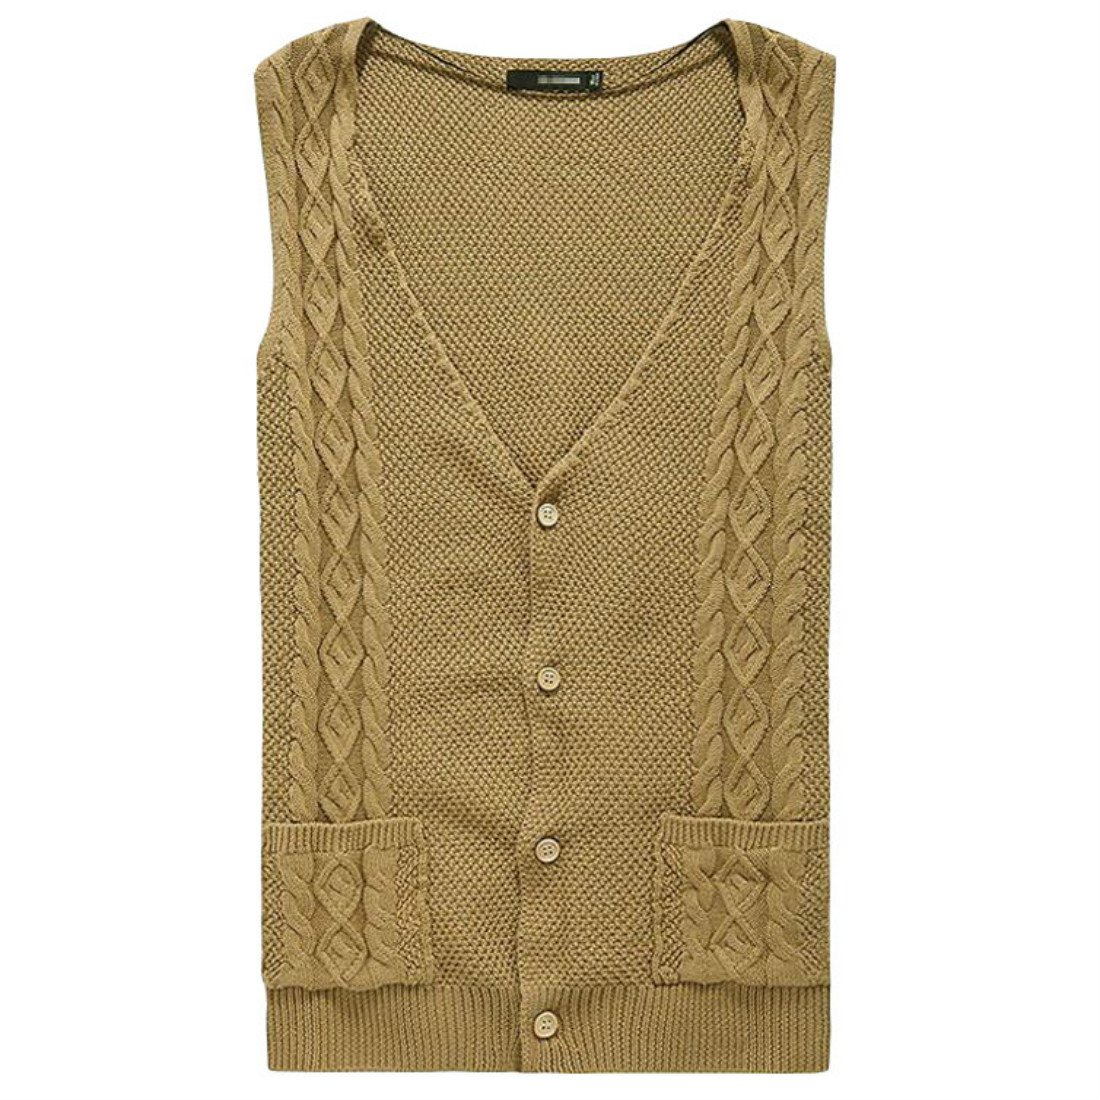 Colygamala Mens Casual V-Neck Cable Knit Cashmere Sweater Vest with Front Button Khaki Sleeveless Vest